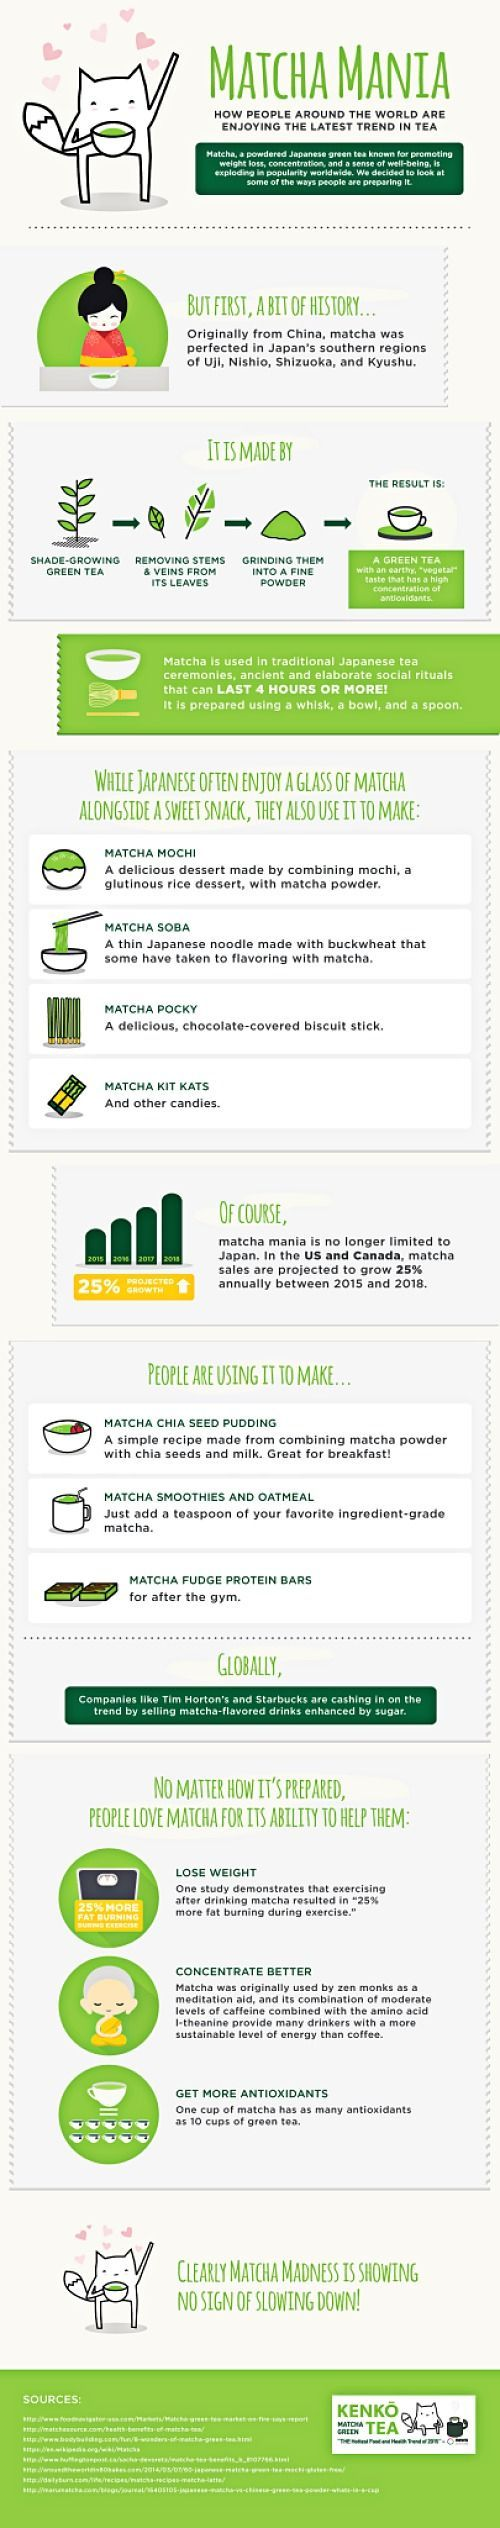 Matcha Green Tea is popular for the health benefits and its deliciousness. Not only in Japan, matcha is growing quickly and becomes the new health trend globally.: